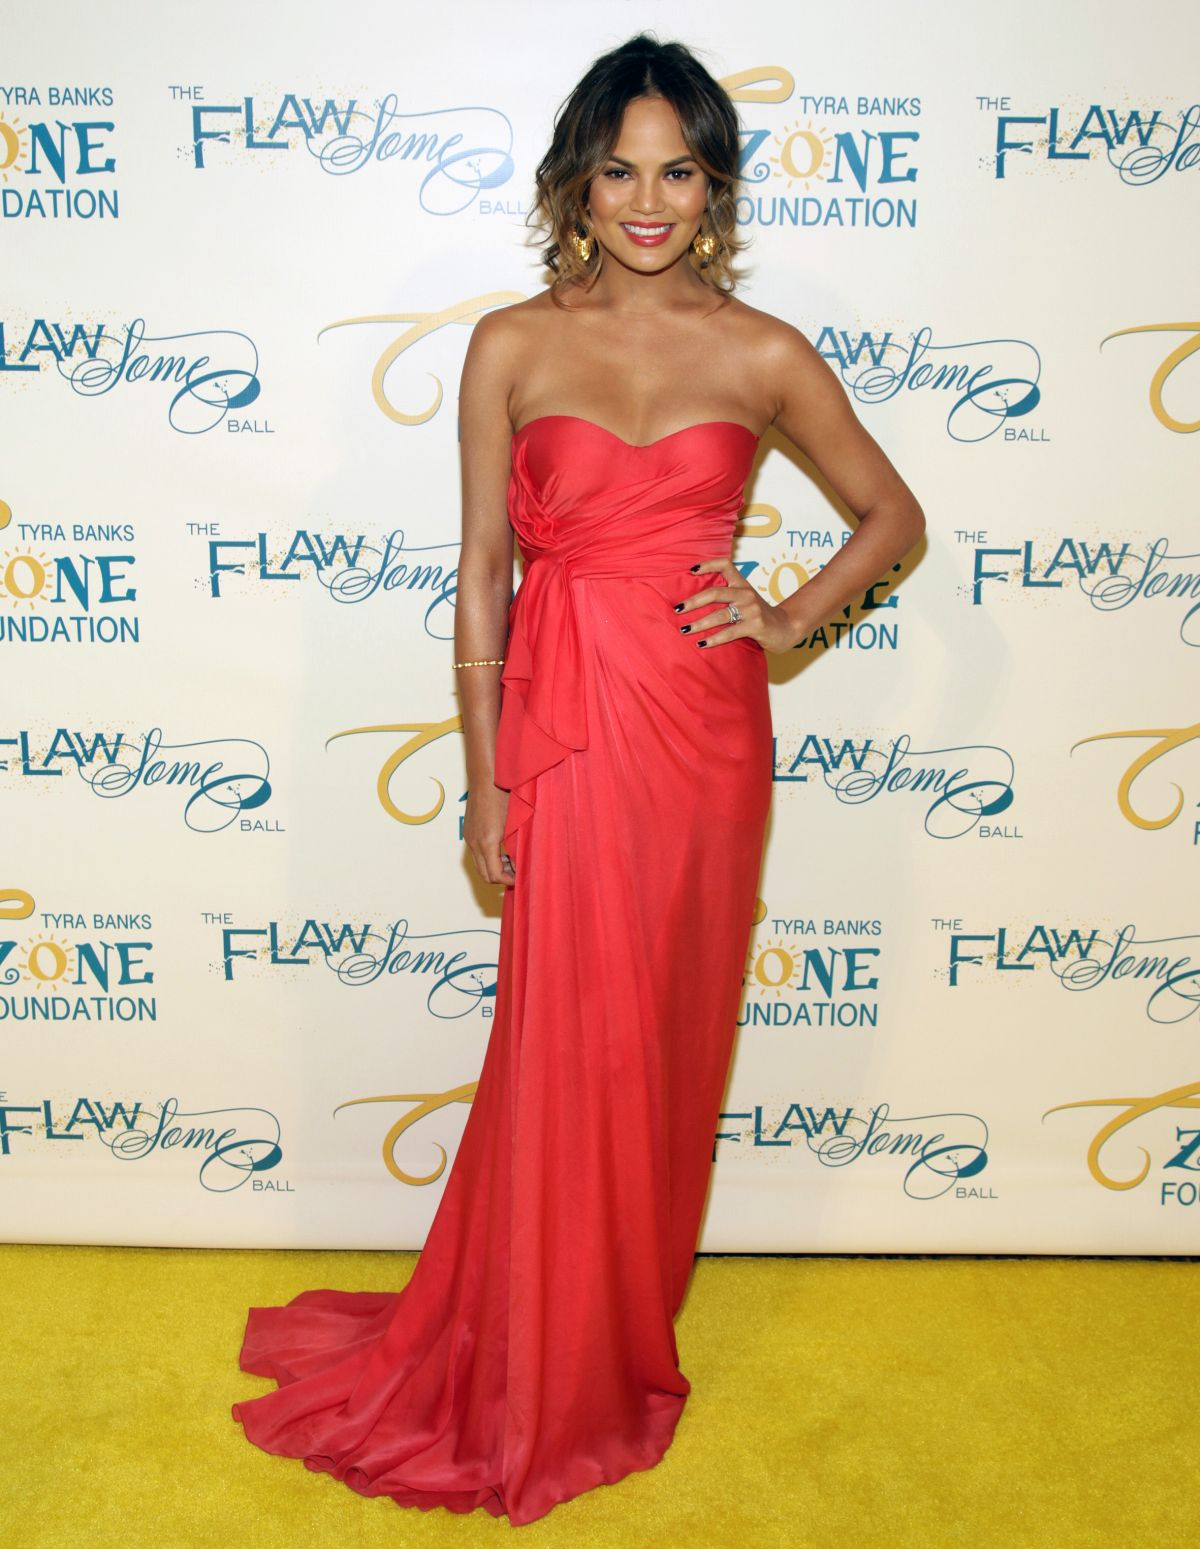 Chrissy Teigen At The Flawsome Ball